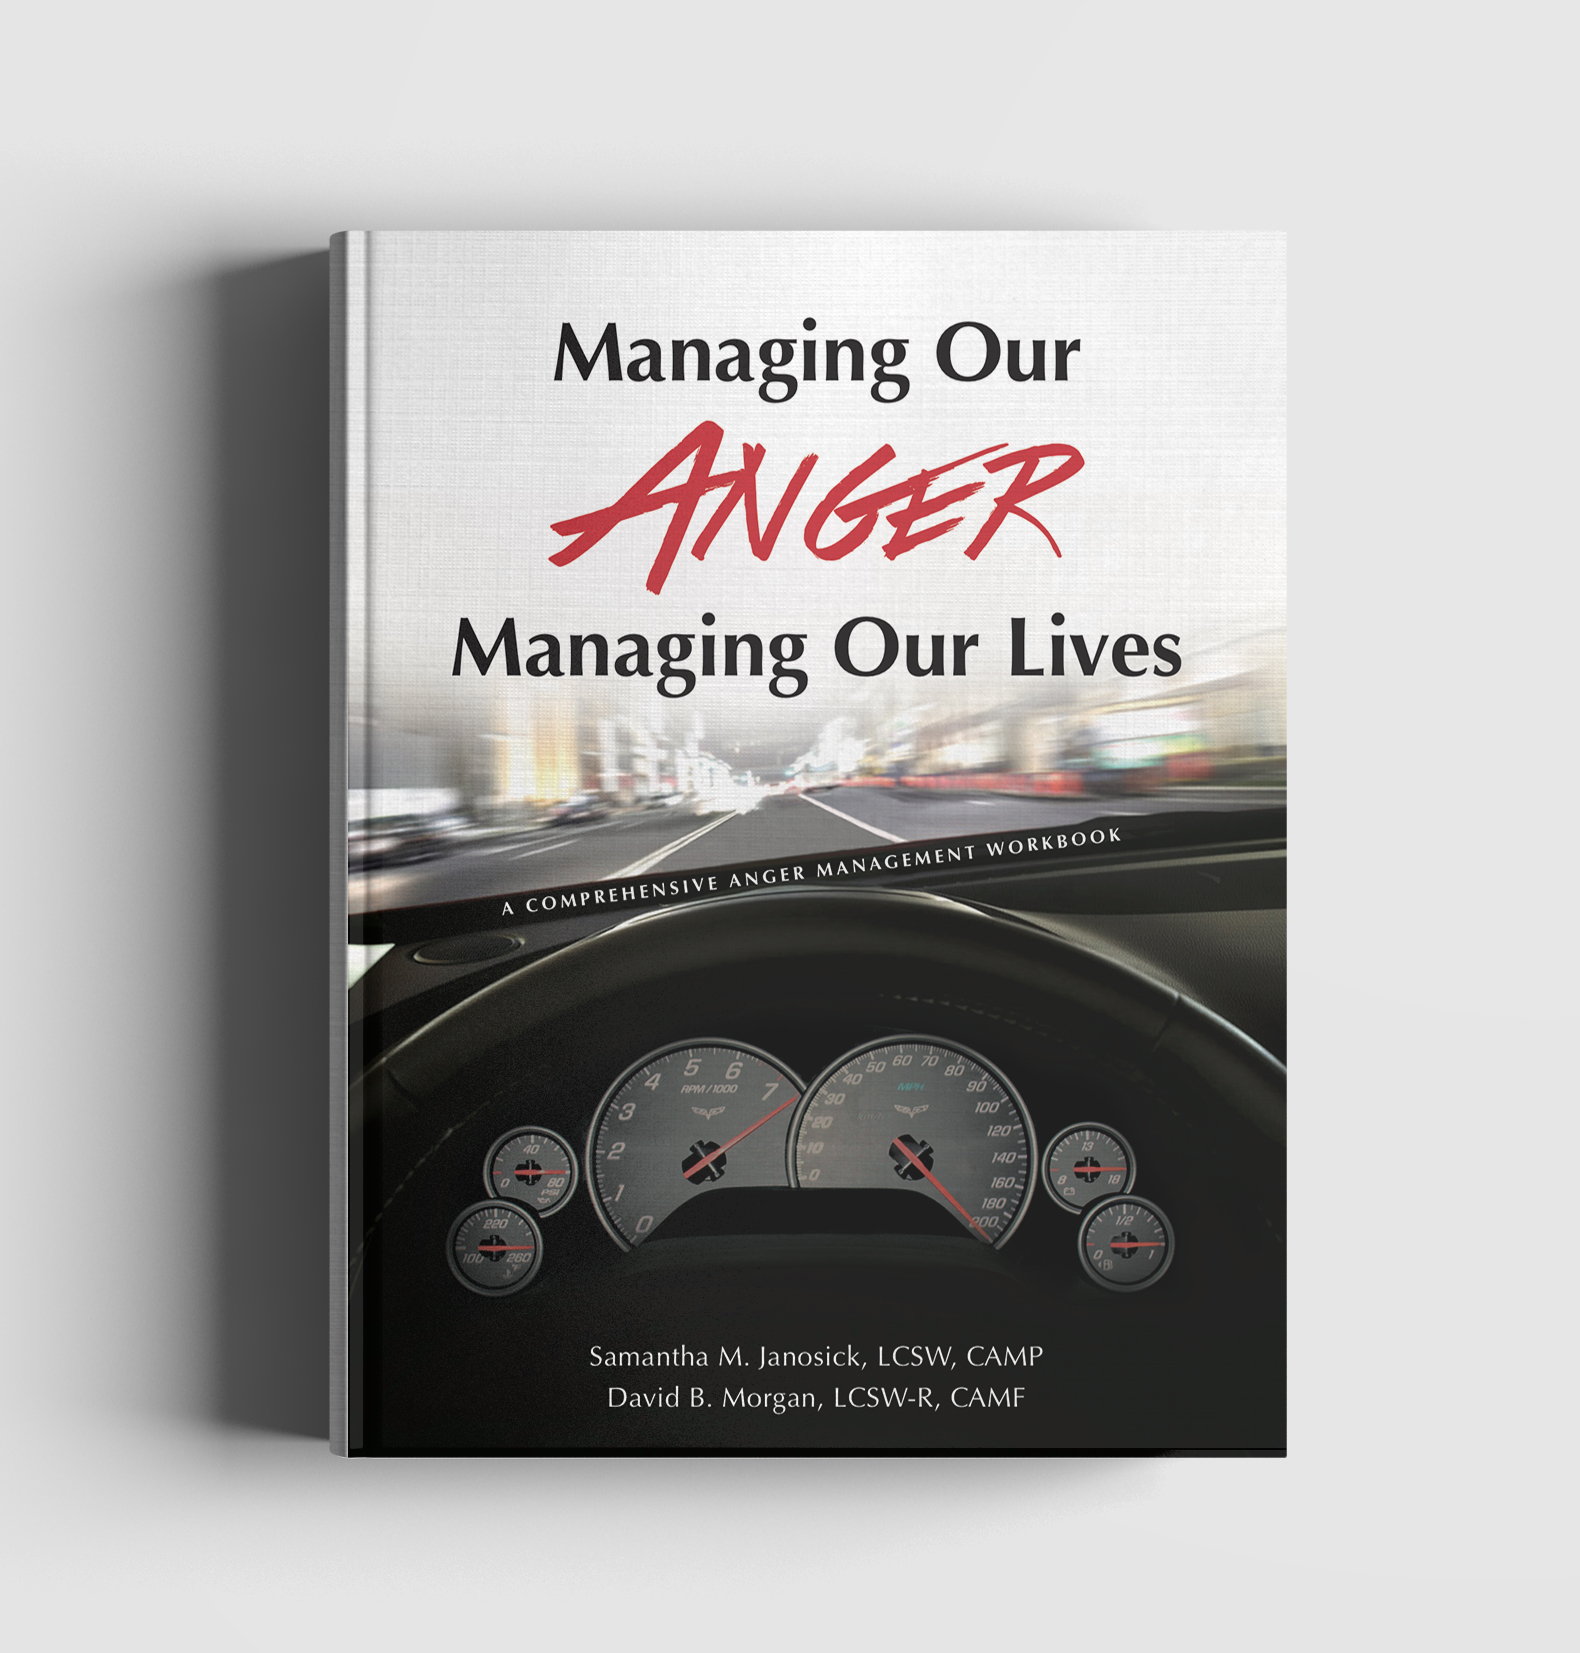 managing our anger book mockup - Home